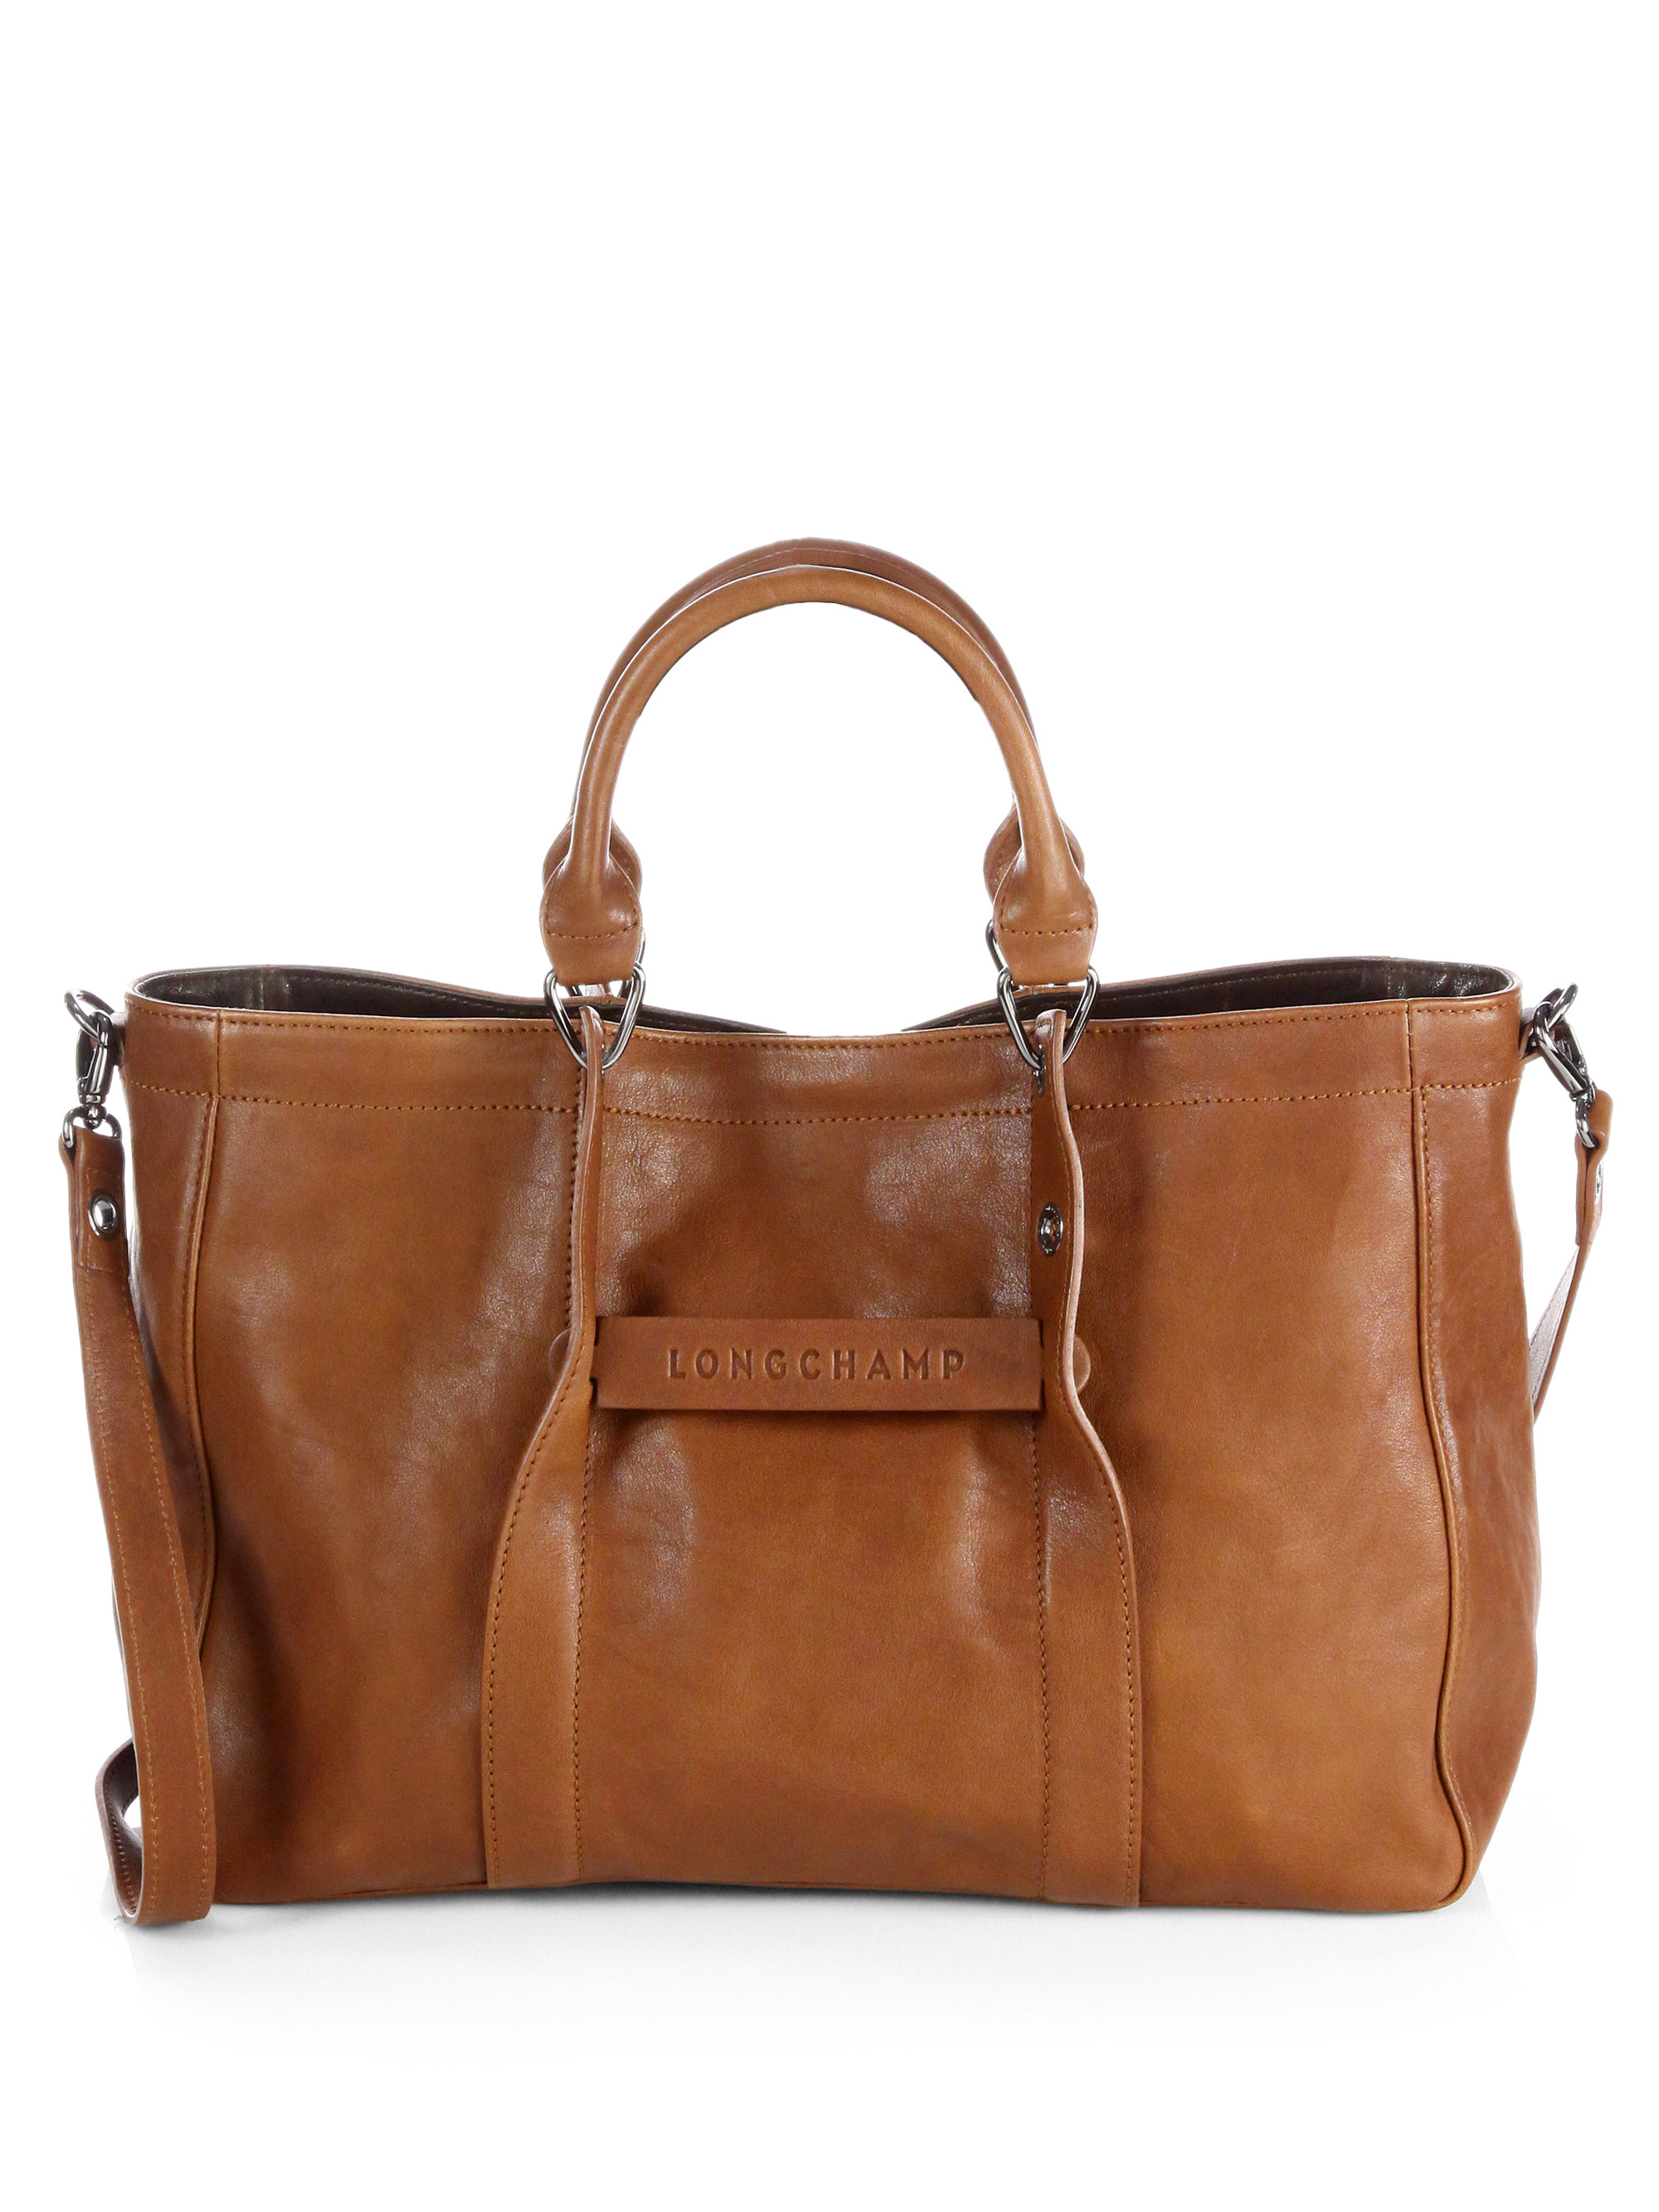 longchamp small leather tote bag in brown cognac lyst. Black Bedroom Furniture Sets. Home Design Ideas